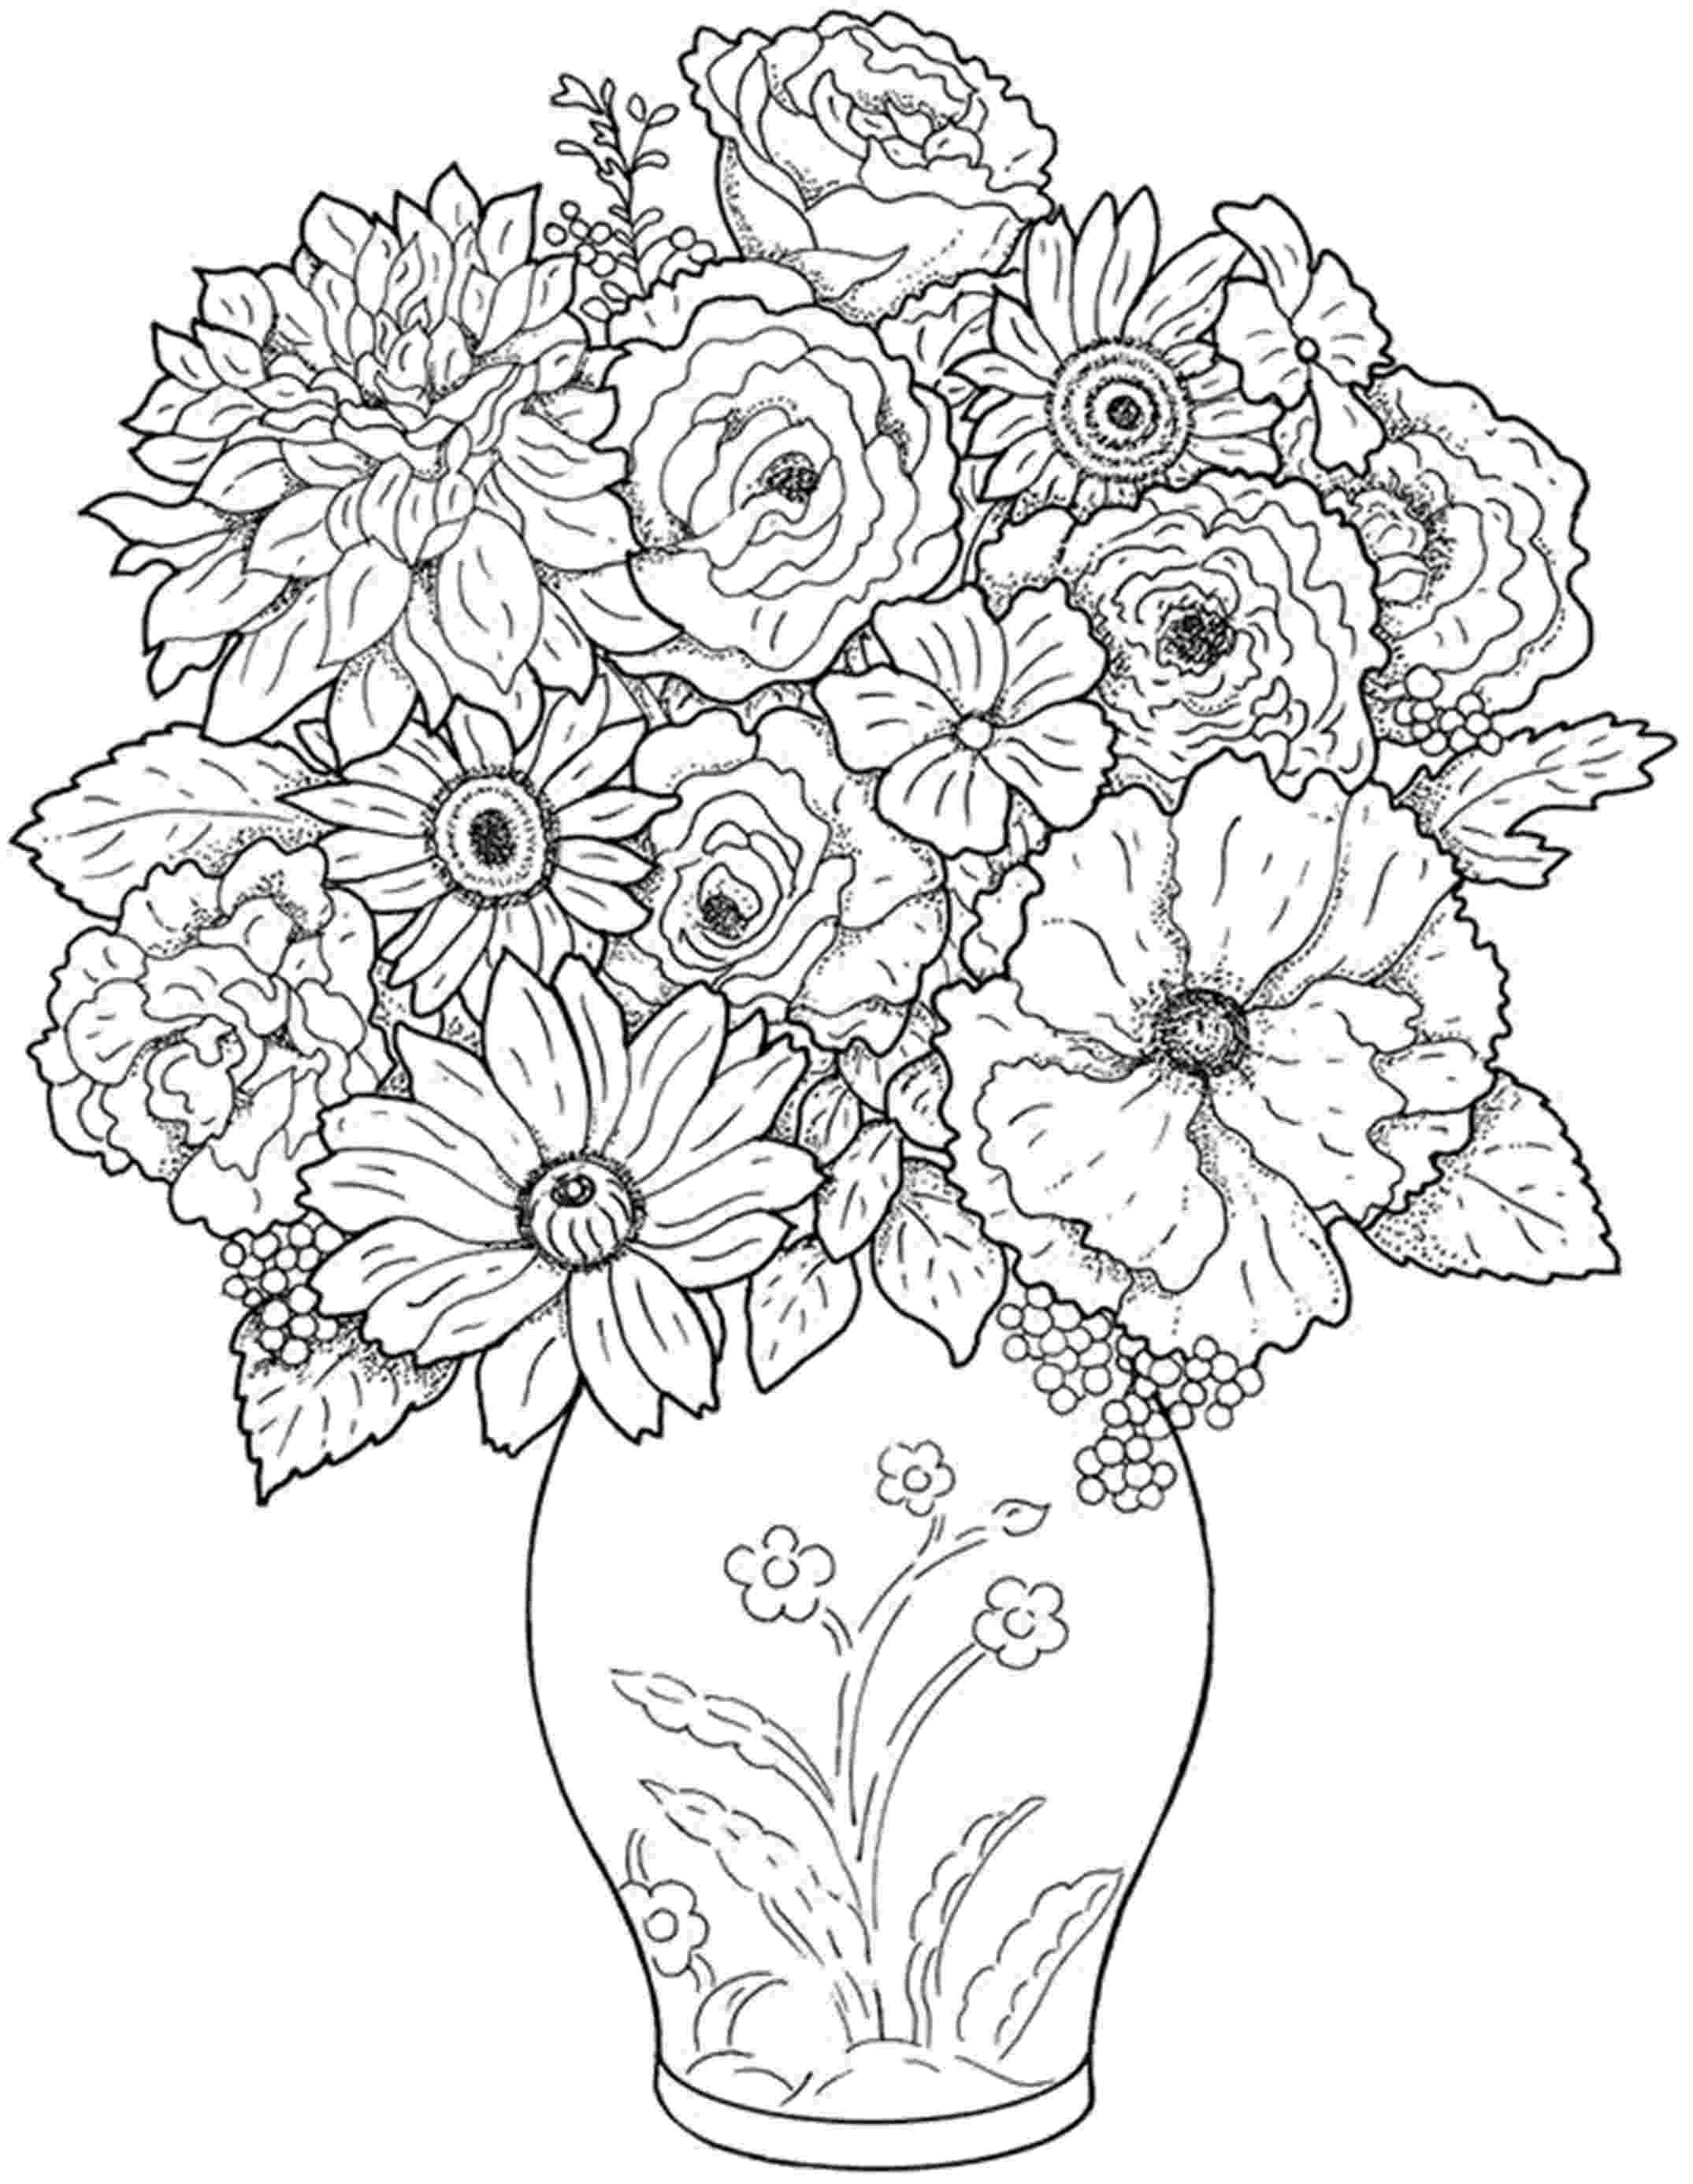 coloring book pictures of flowers free printable flower coloring pages for kids best book pictures flowers coloring of